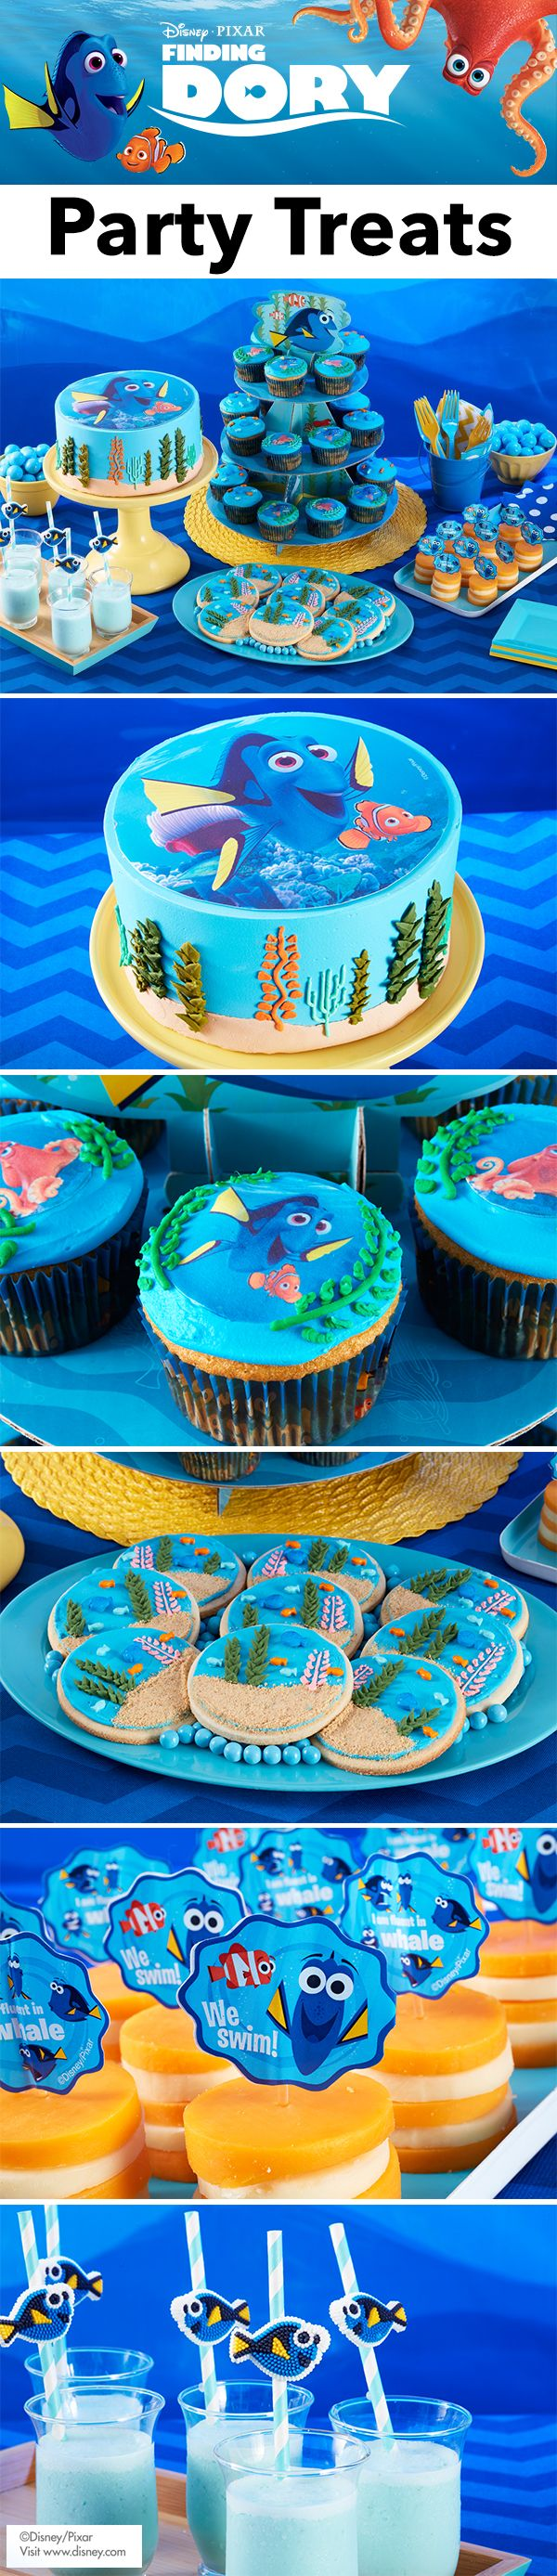 Finding Dory Party Treats - Create easy DIY Finding Dory cake, cupcakes, cookies, cheese bites, and smoothie for a fun, ocean adventure or under the sea themed party! Kids will have fun seeing their favorite Finding Dory characters.